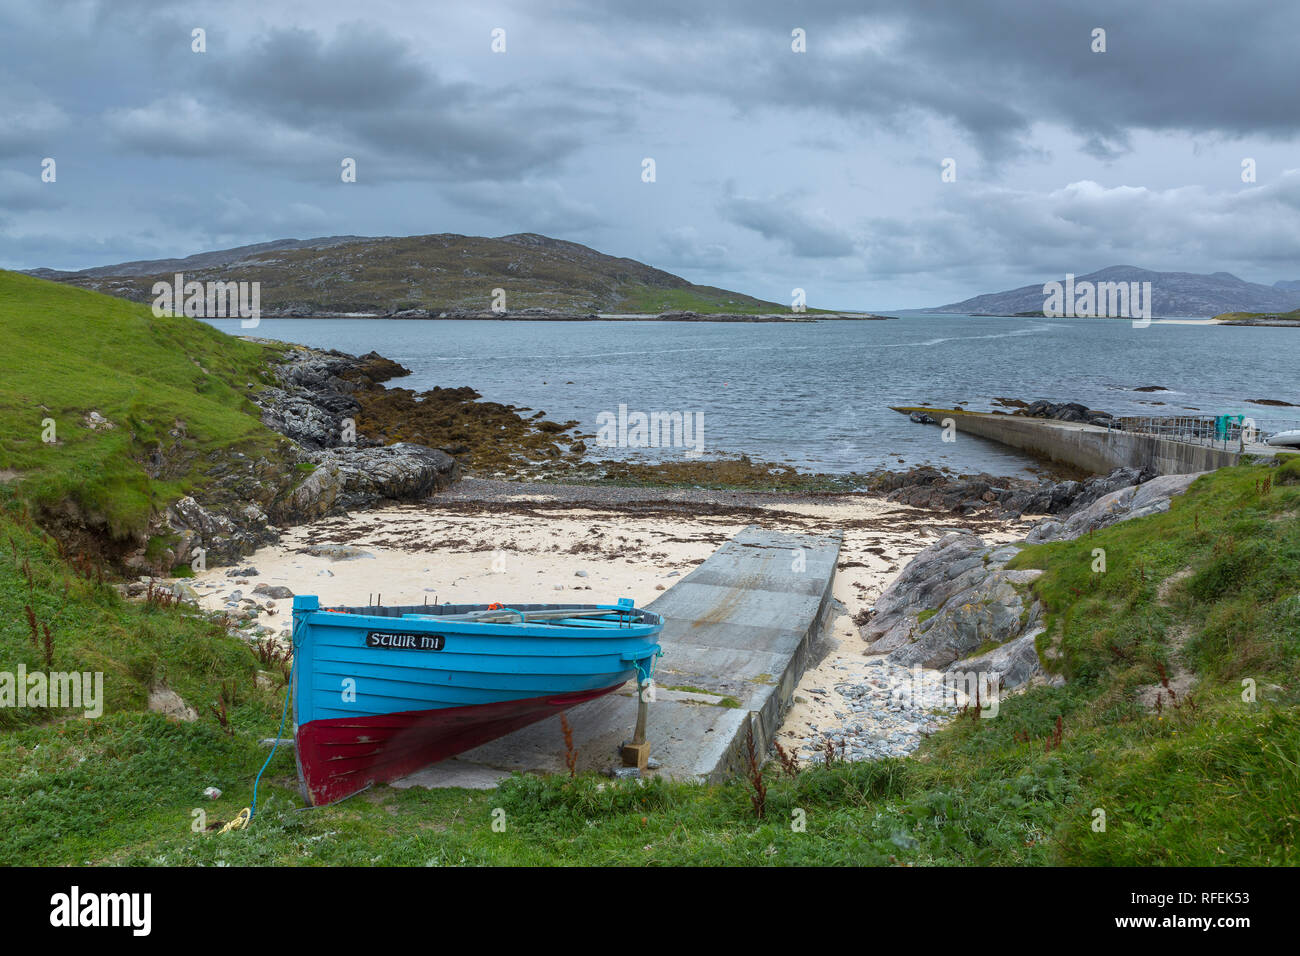 Blue and red boat at the jetty near Huisinis, Isle of Harris, Scotland. Looking across the water towards Scarp. - Stock Image